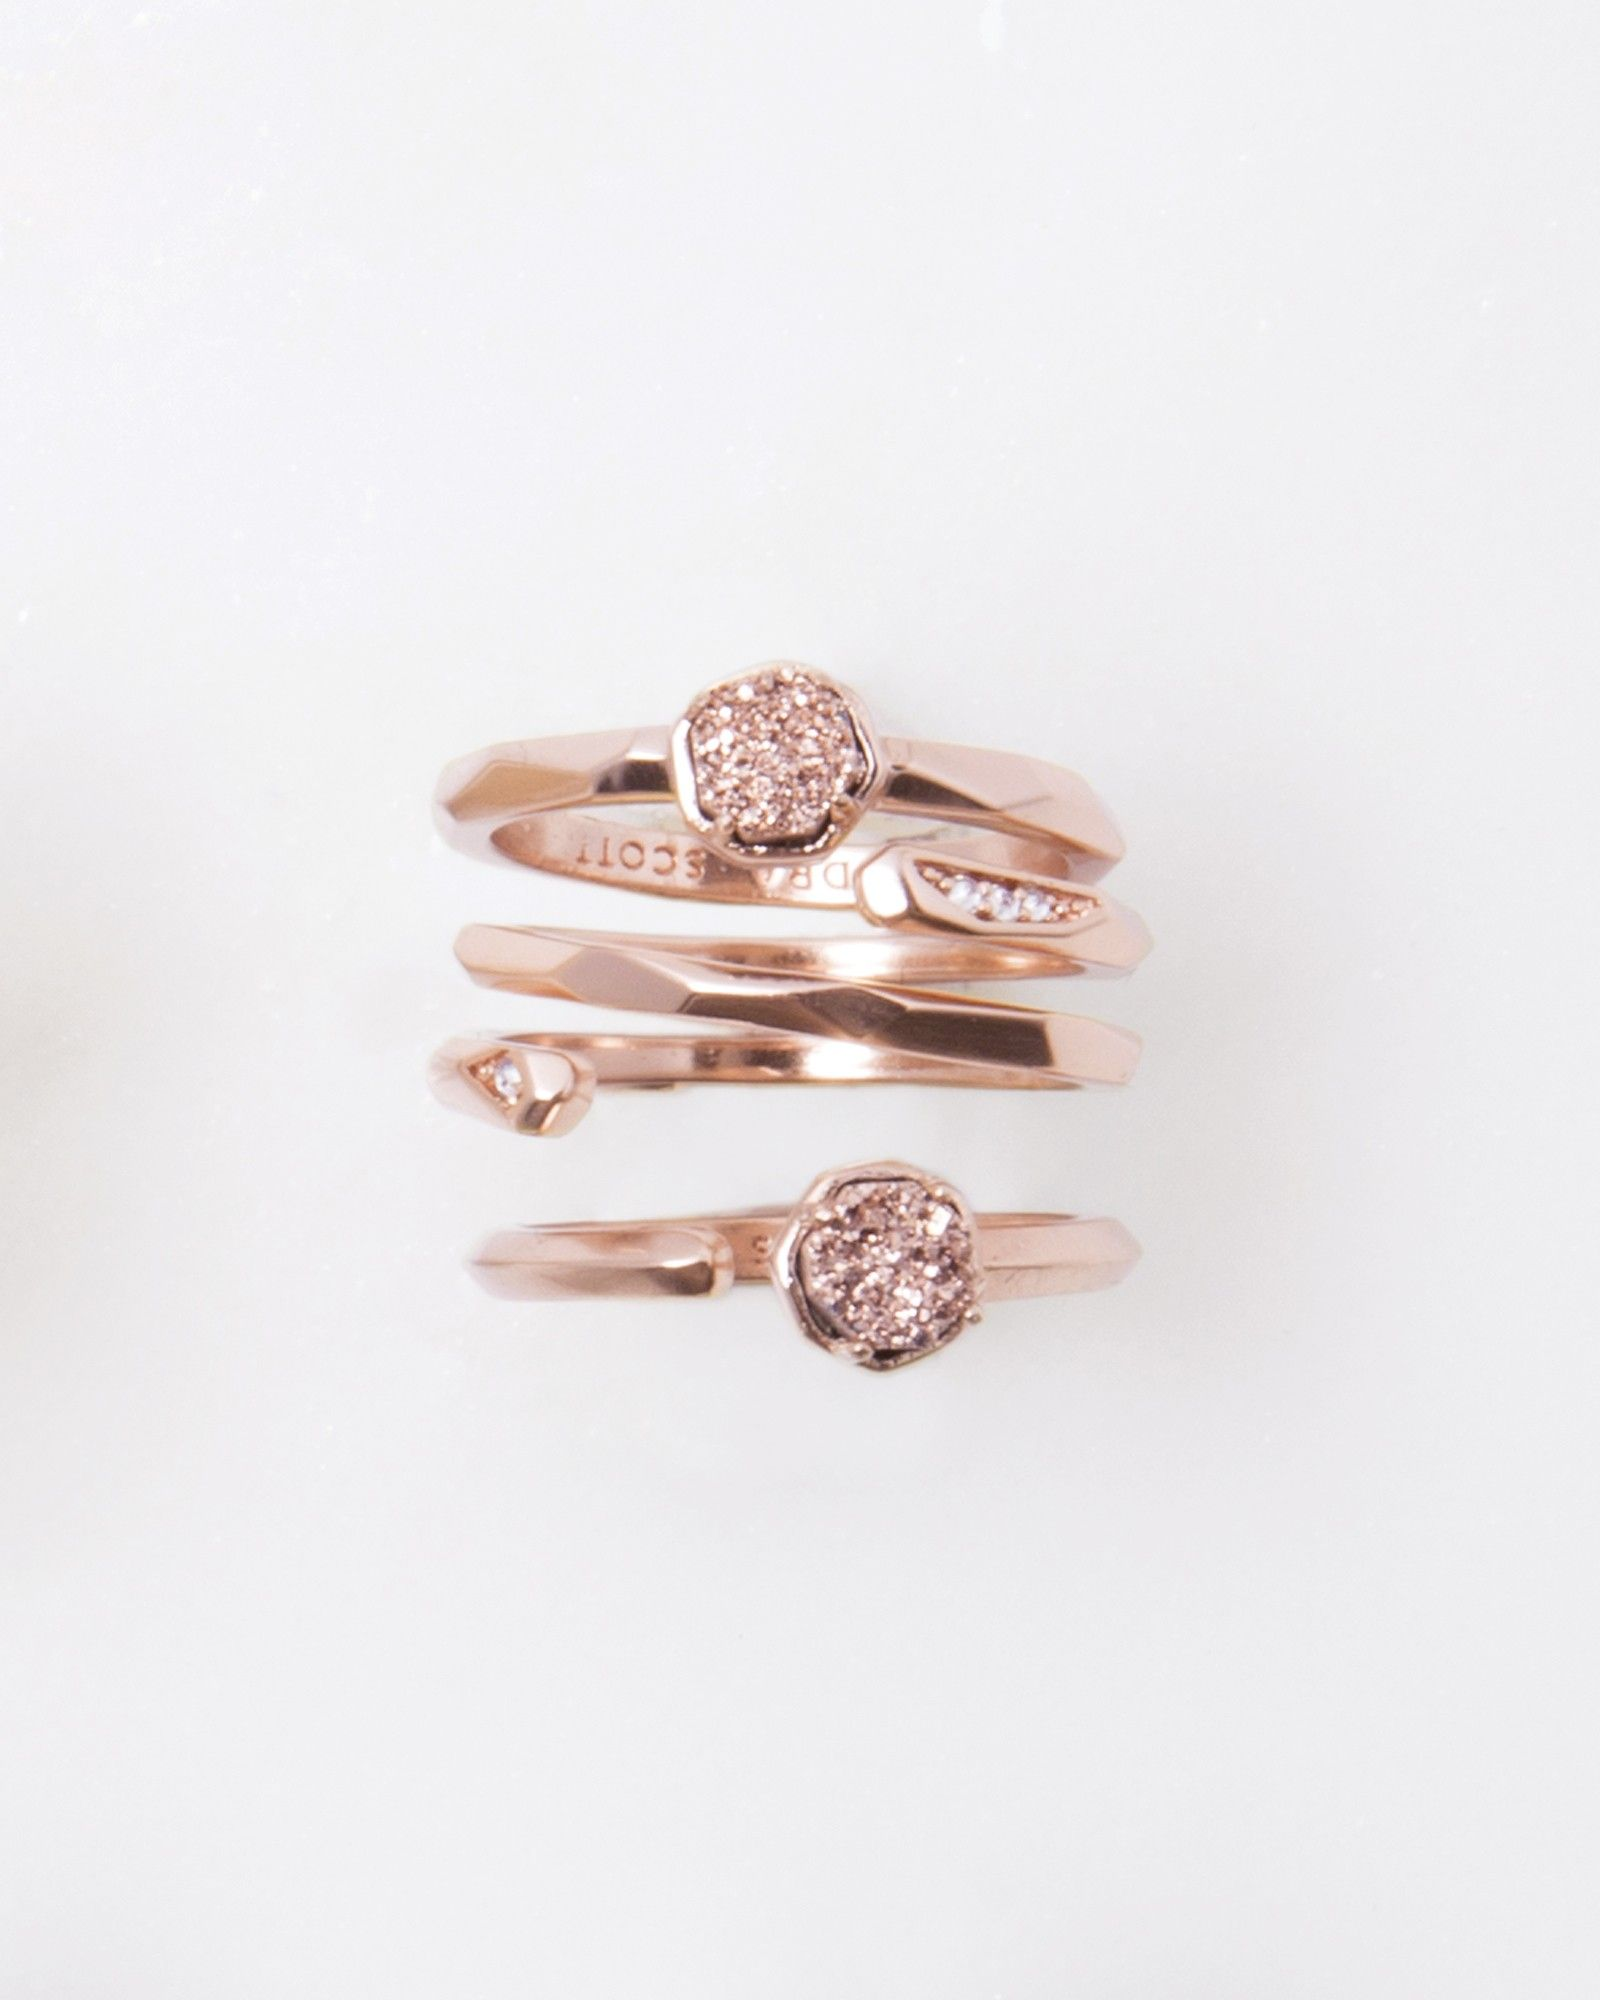 The Warren rose gold ring set in rose gold drusy is perfect for